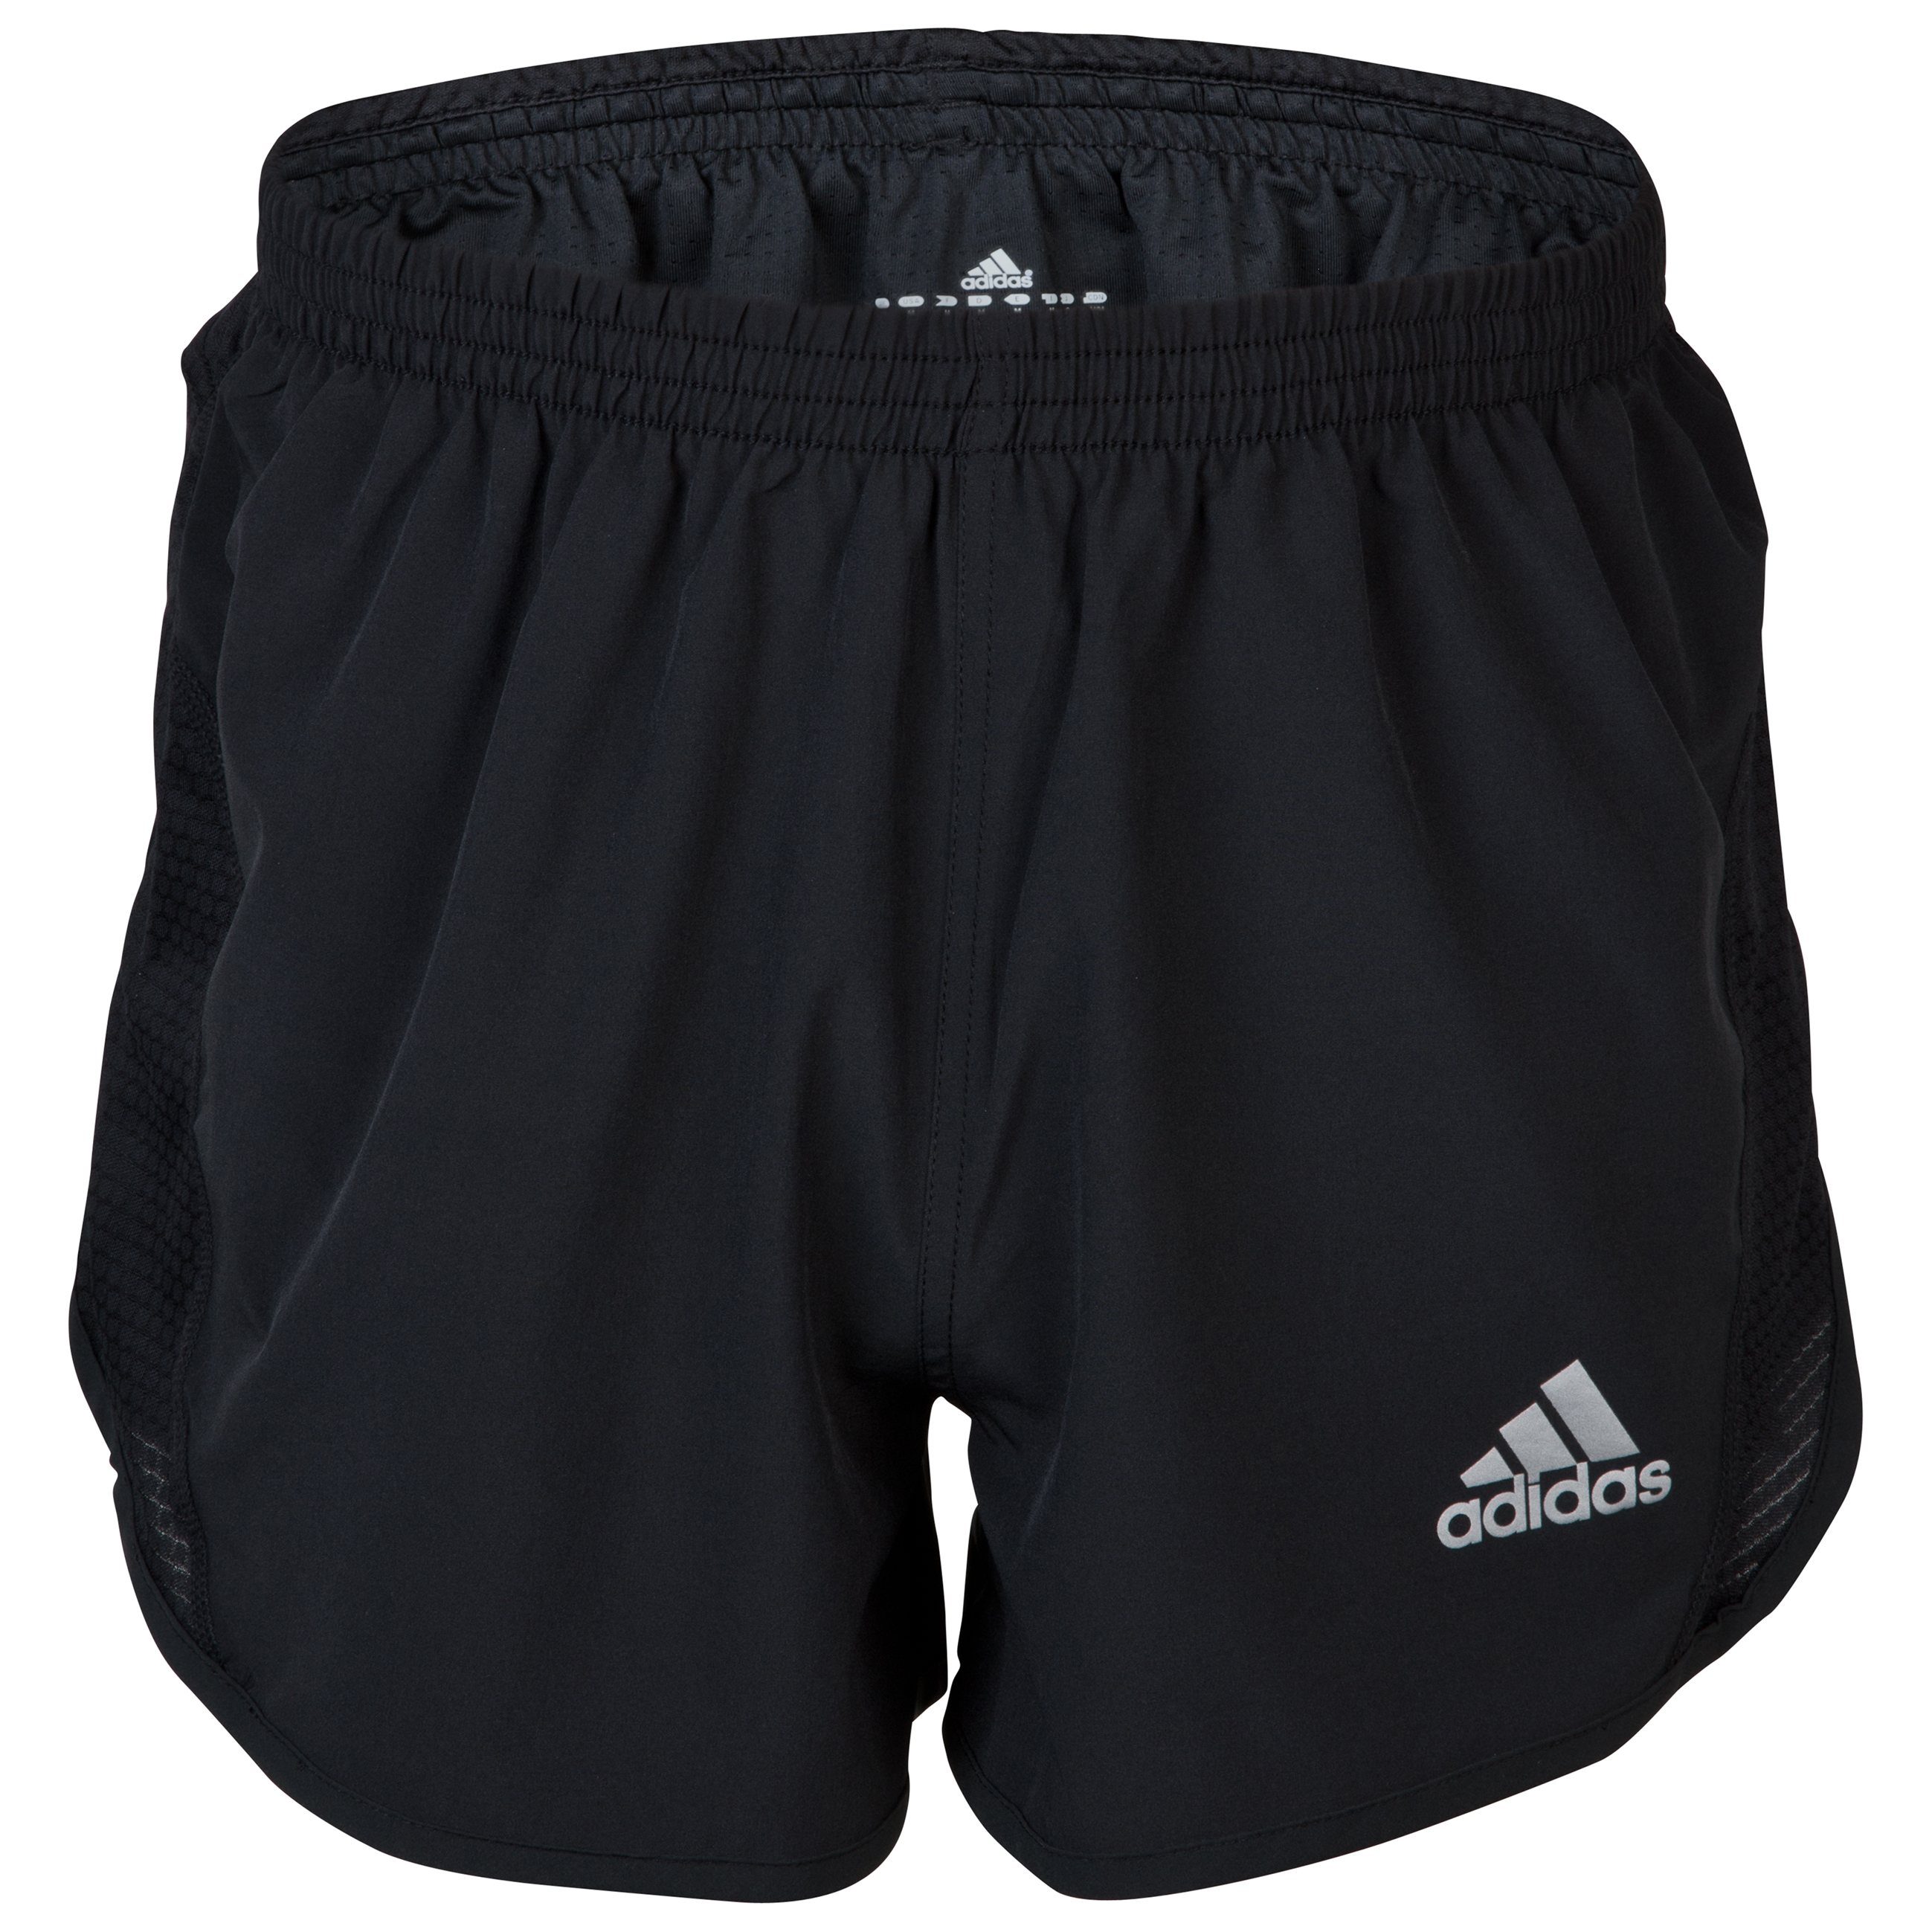 Adidas Supernova Split Shorts - Black